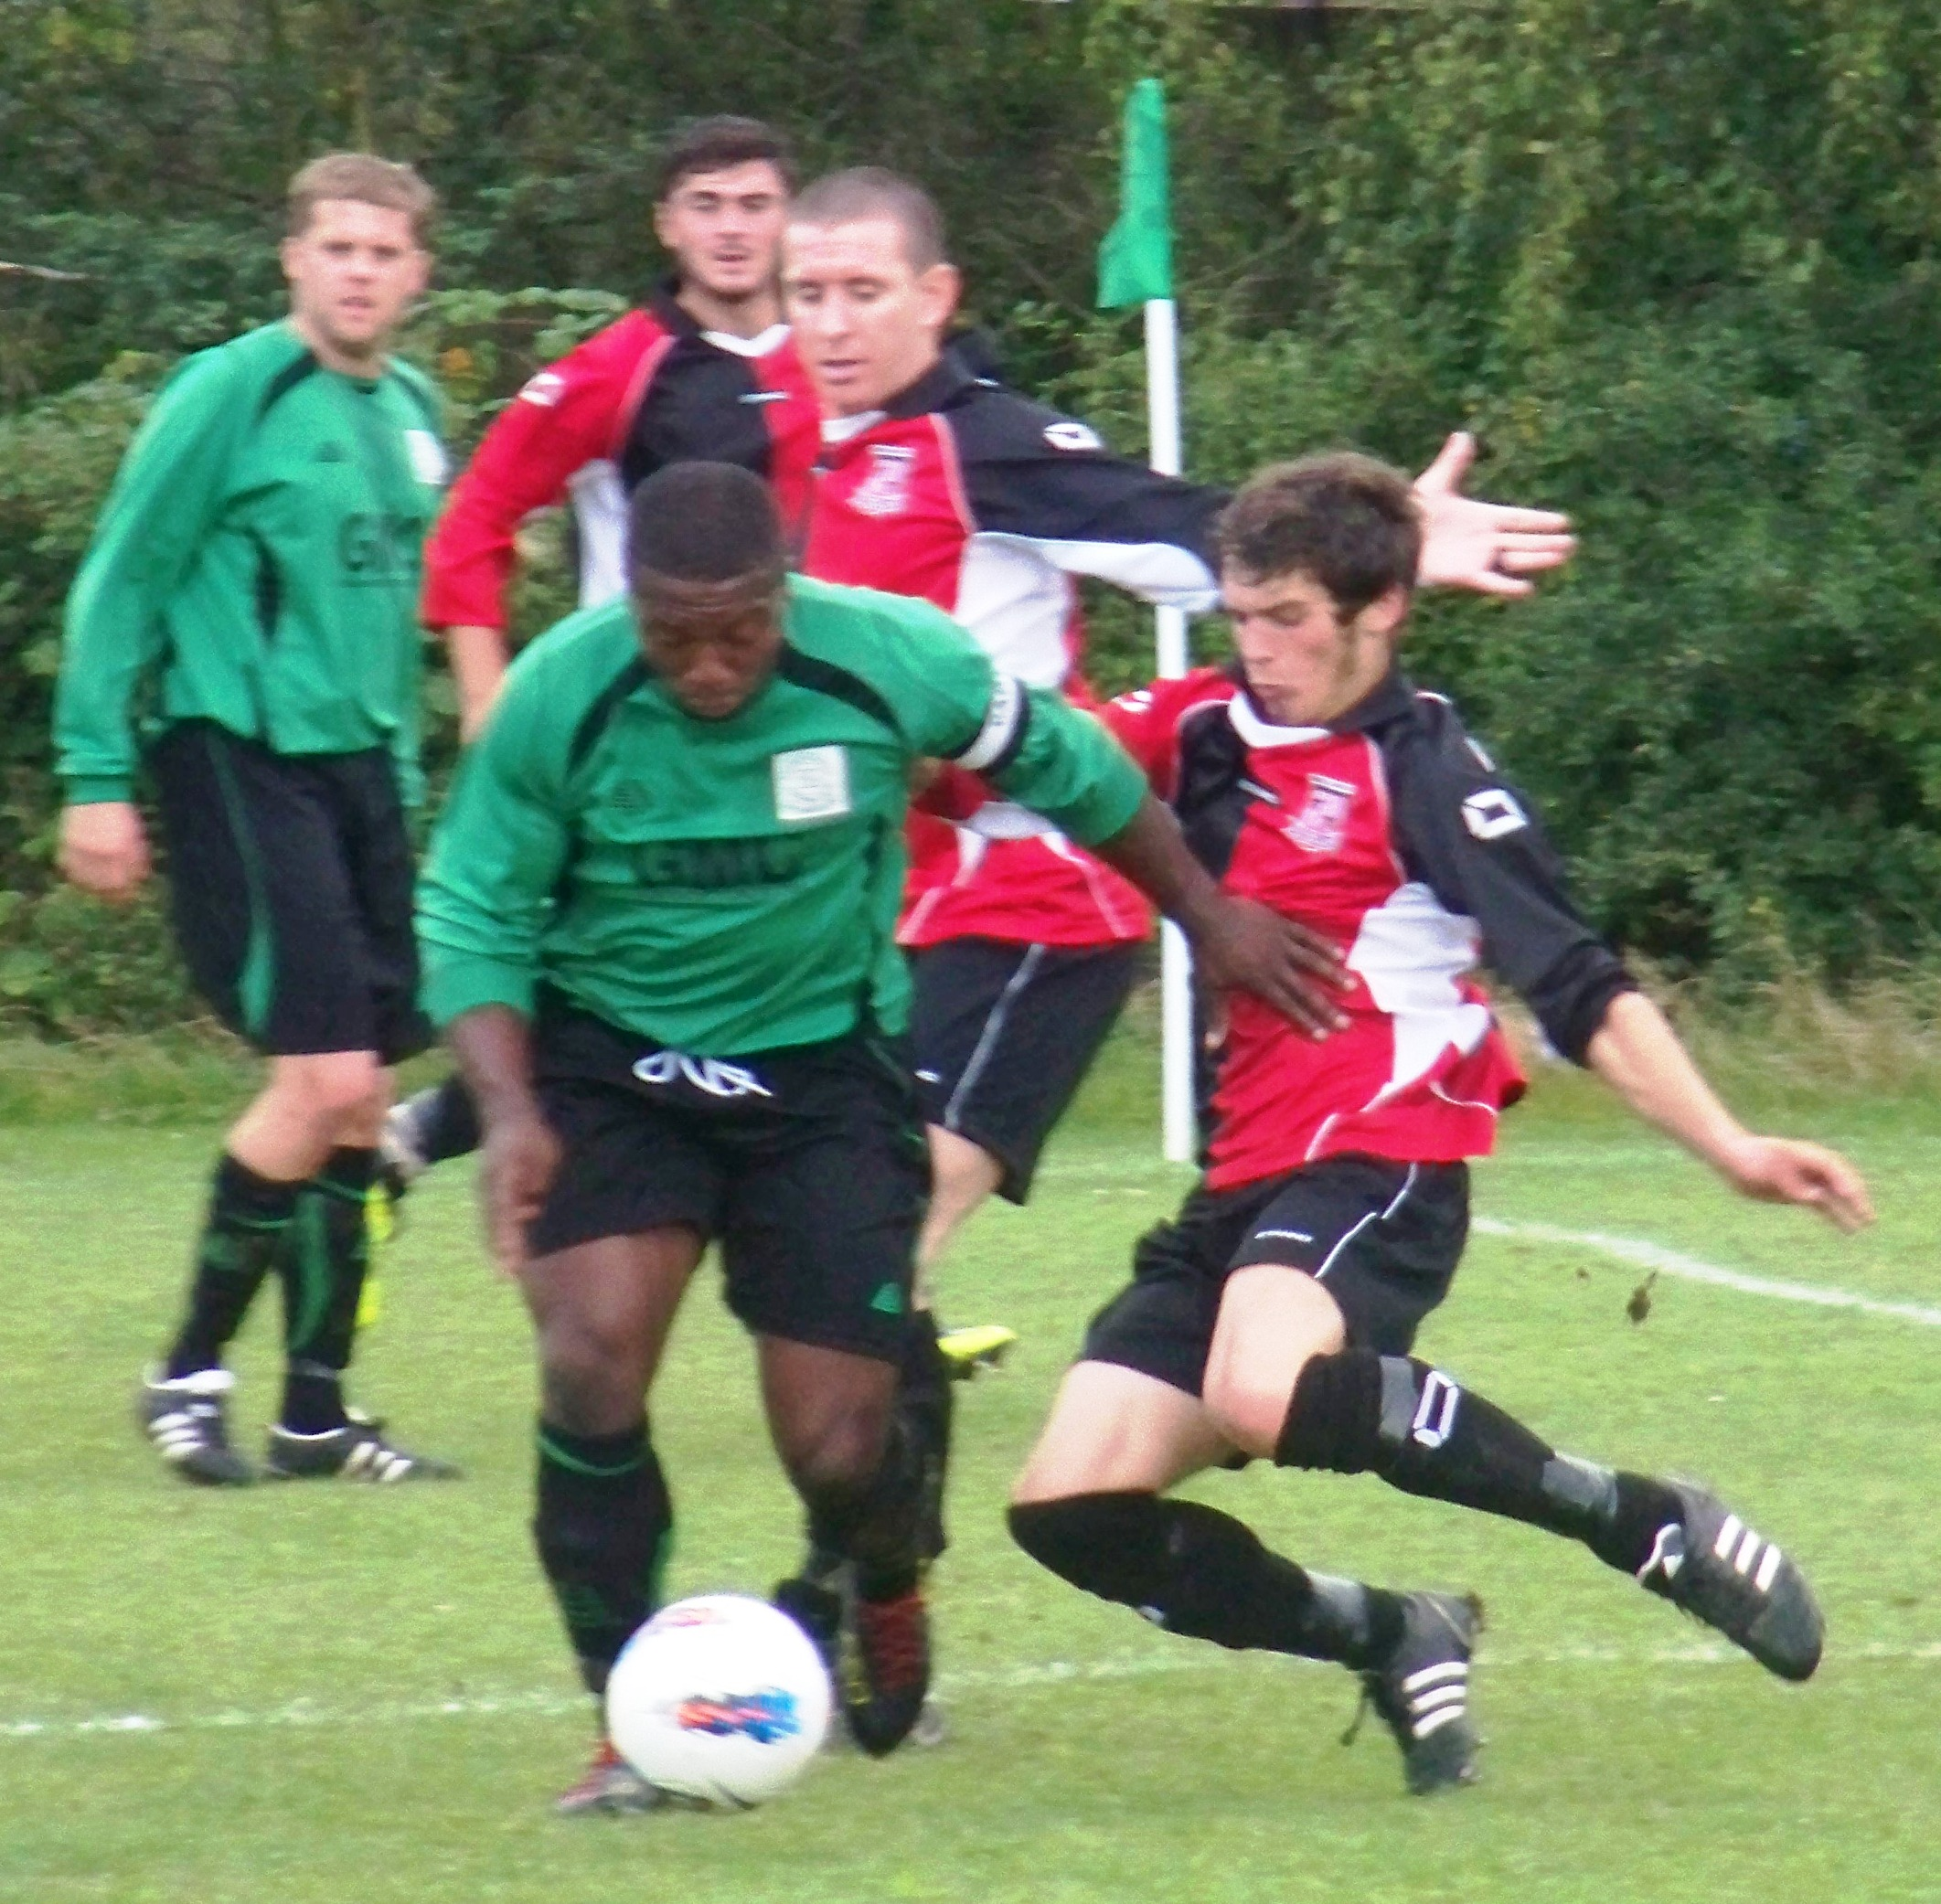 September 2011: Bromley Green Football Club